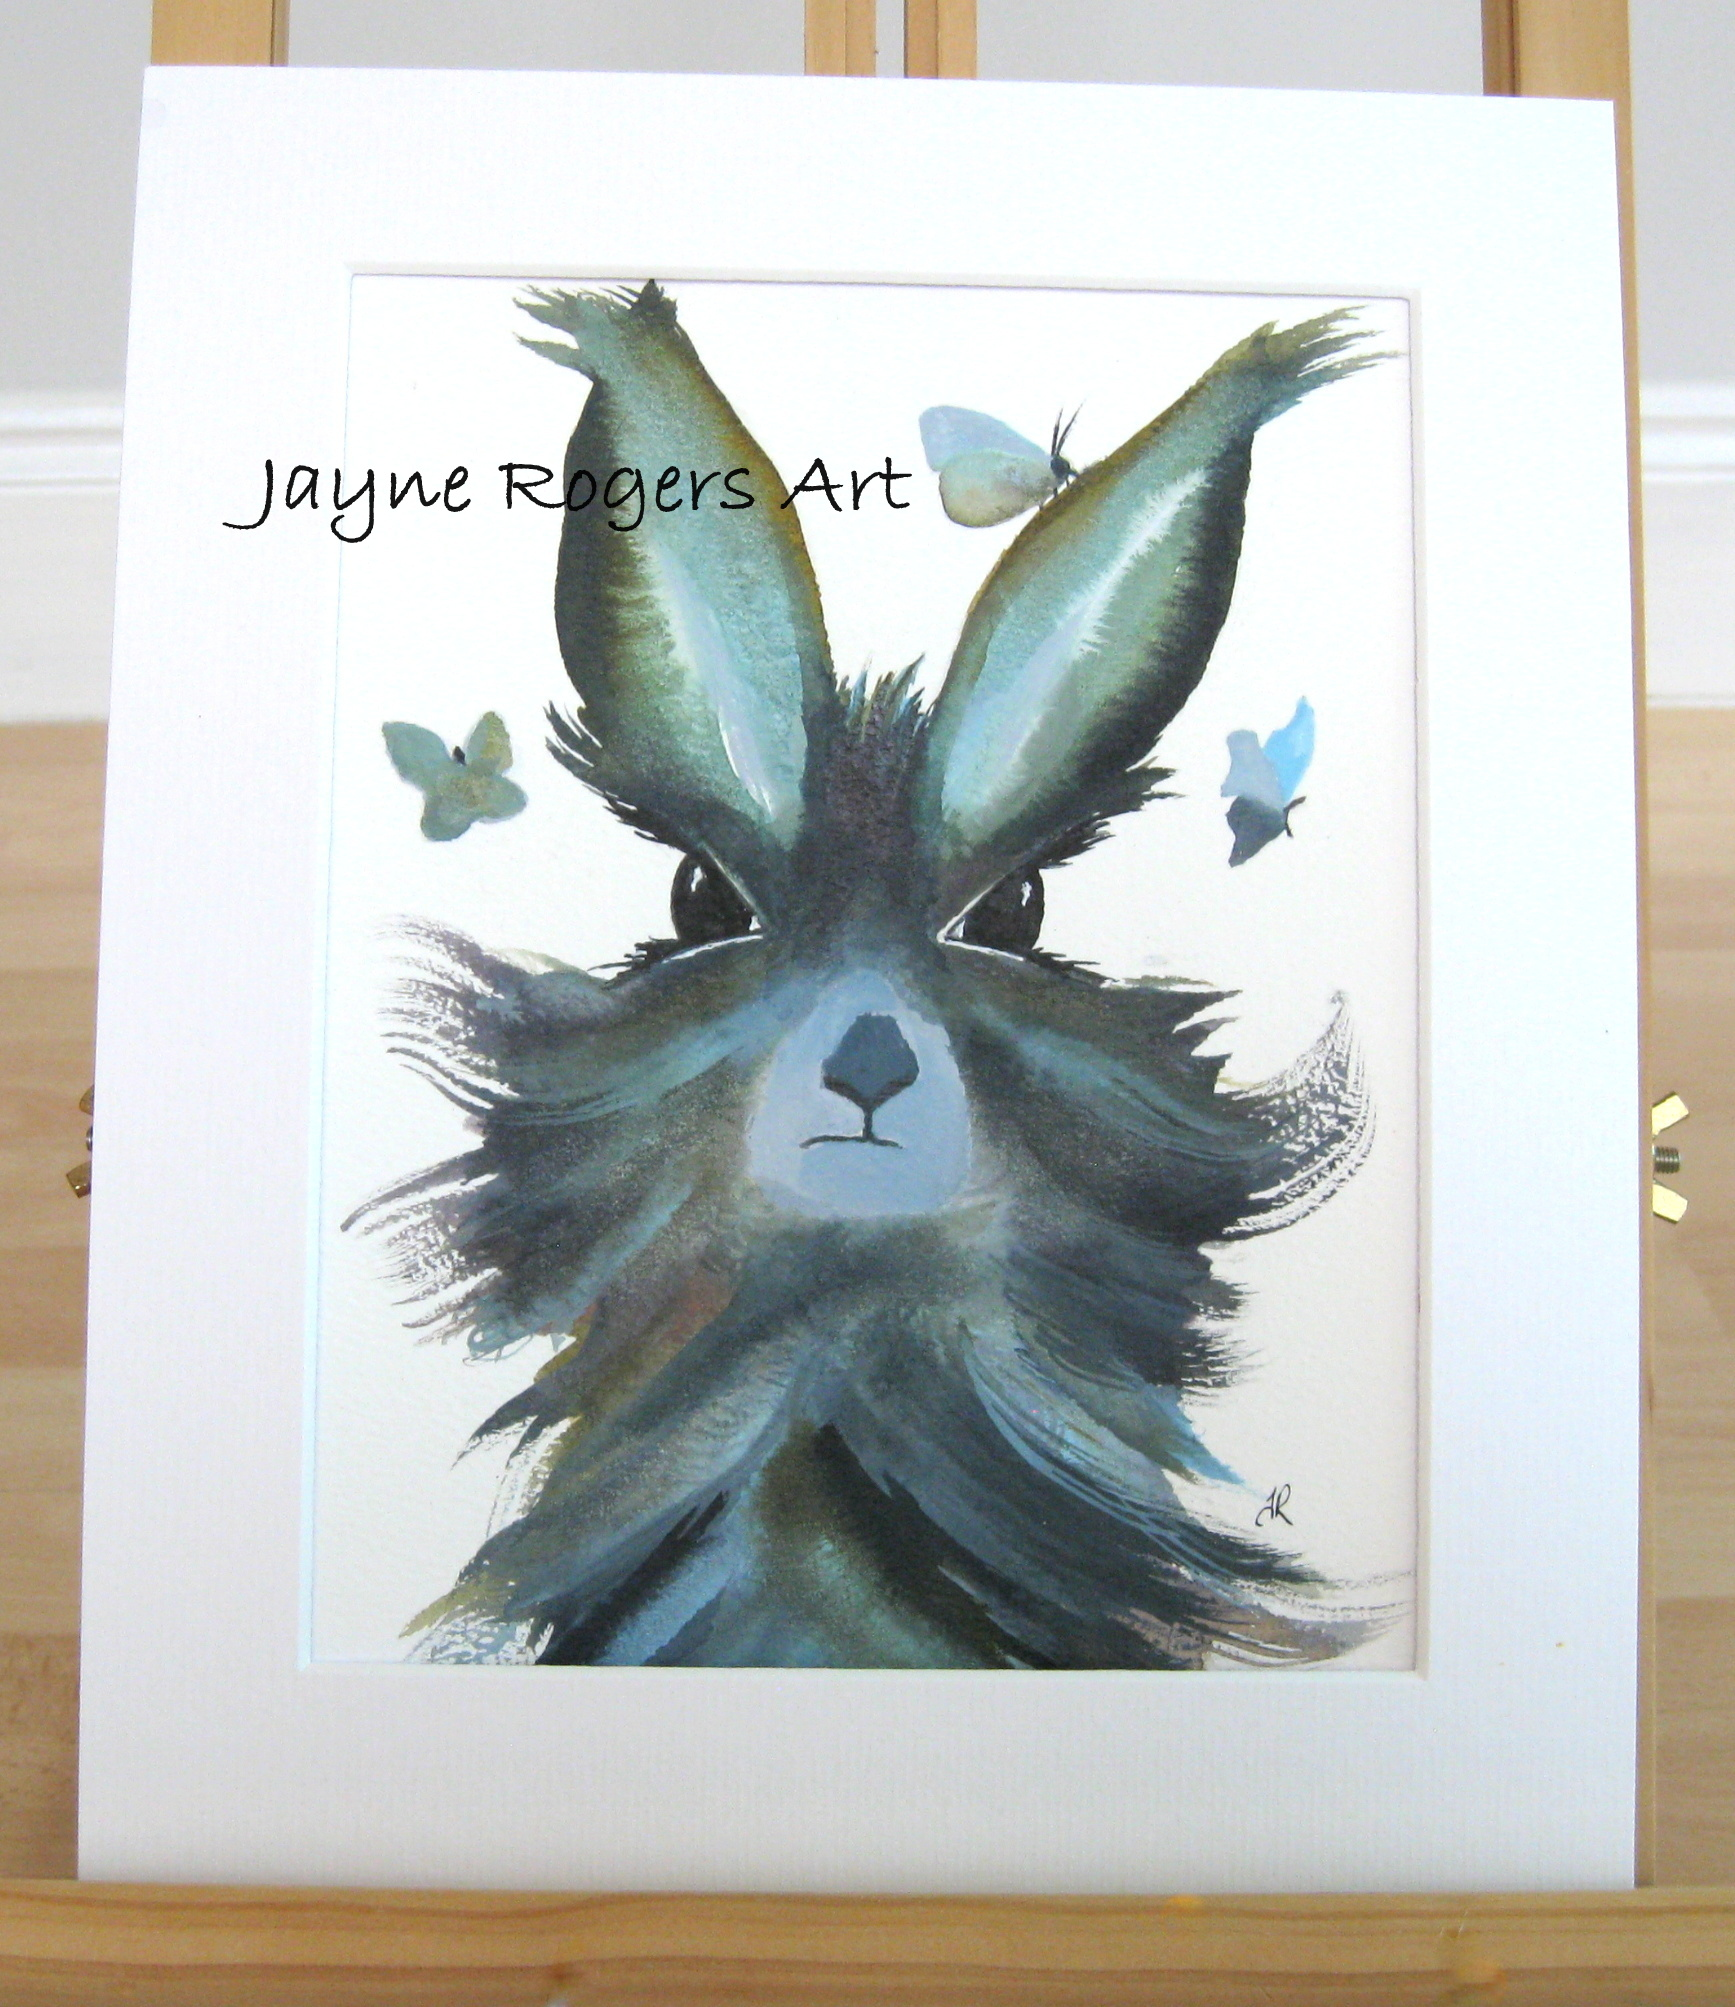 Hare Flutters Painting.